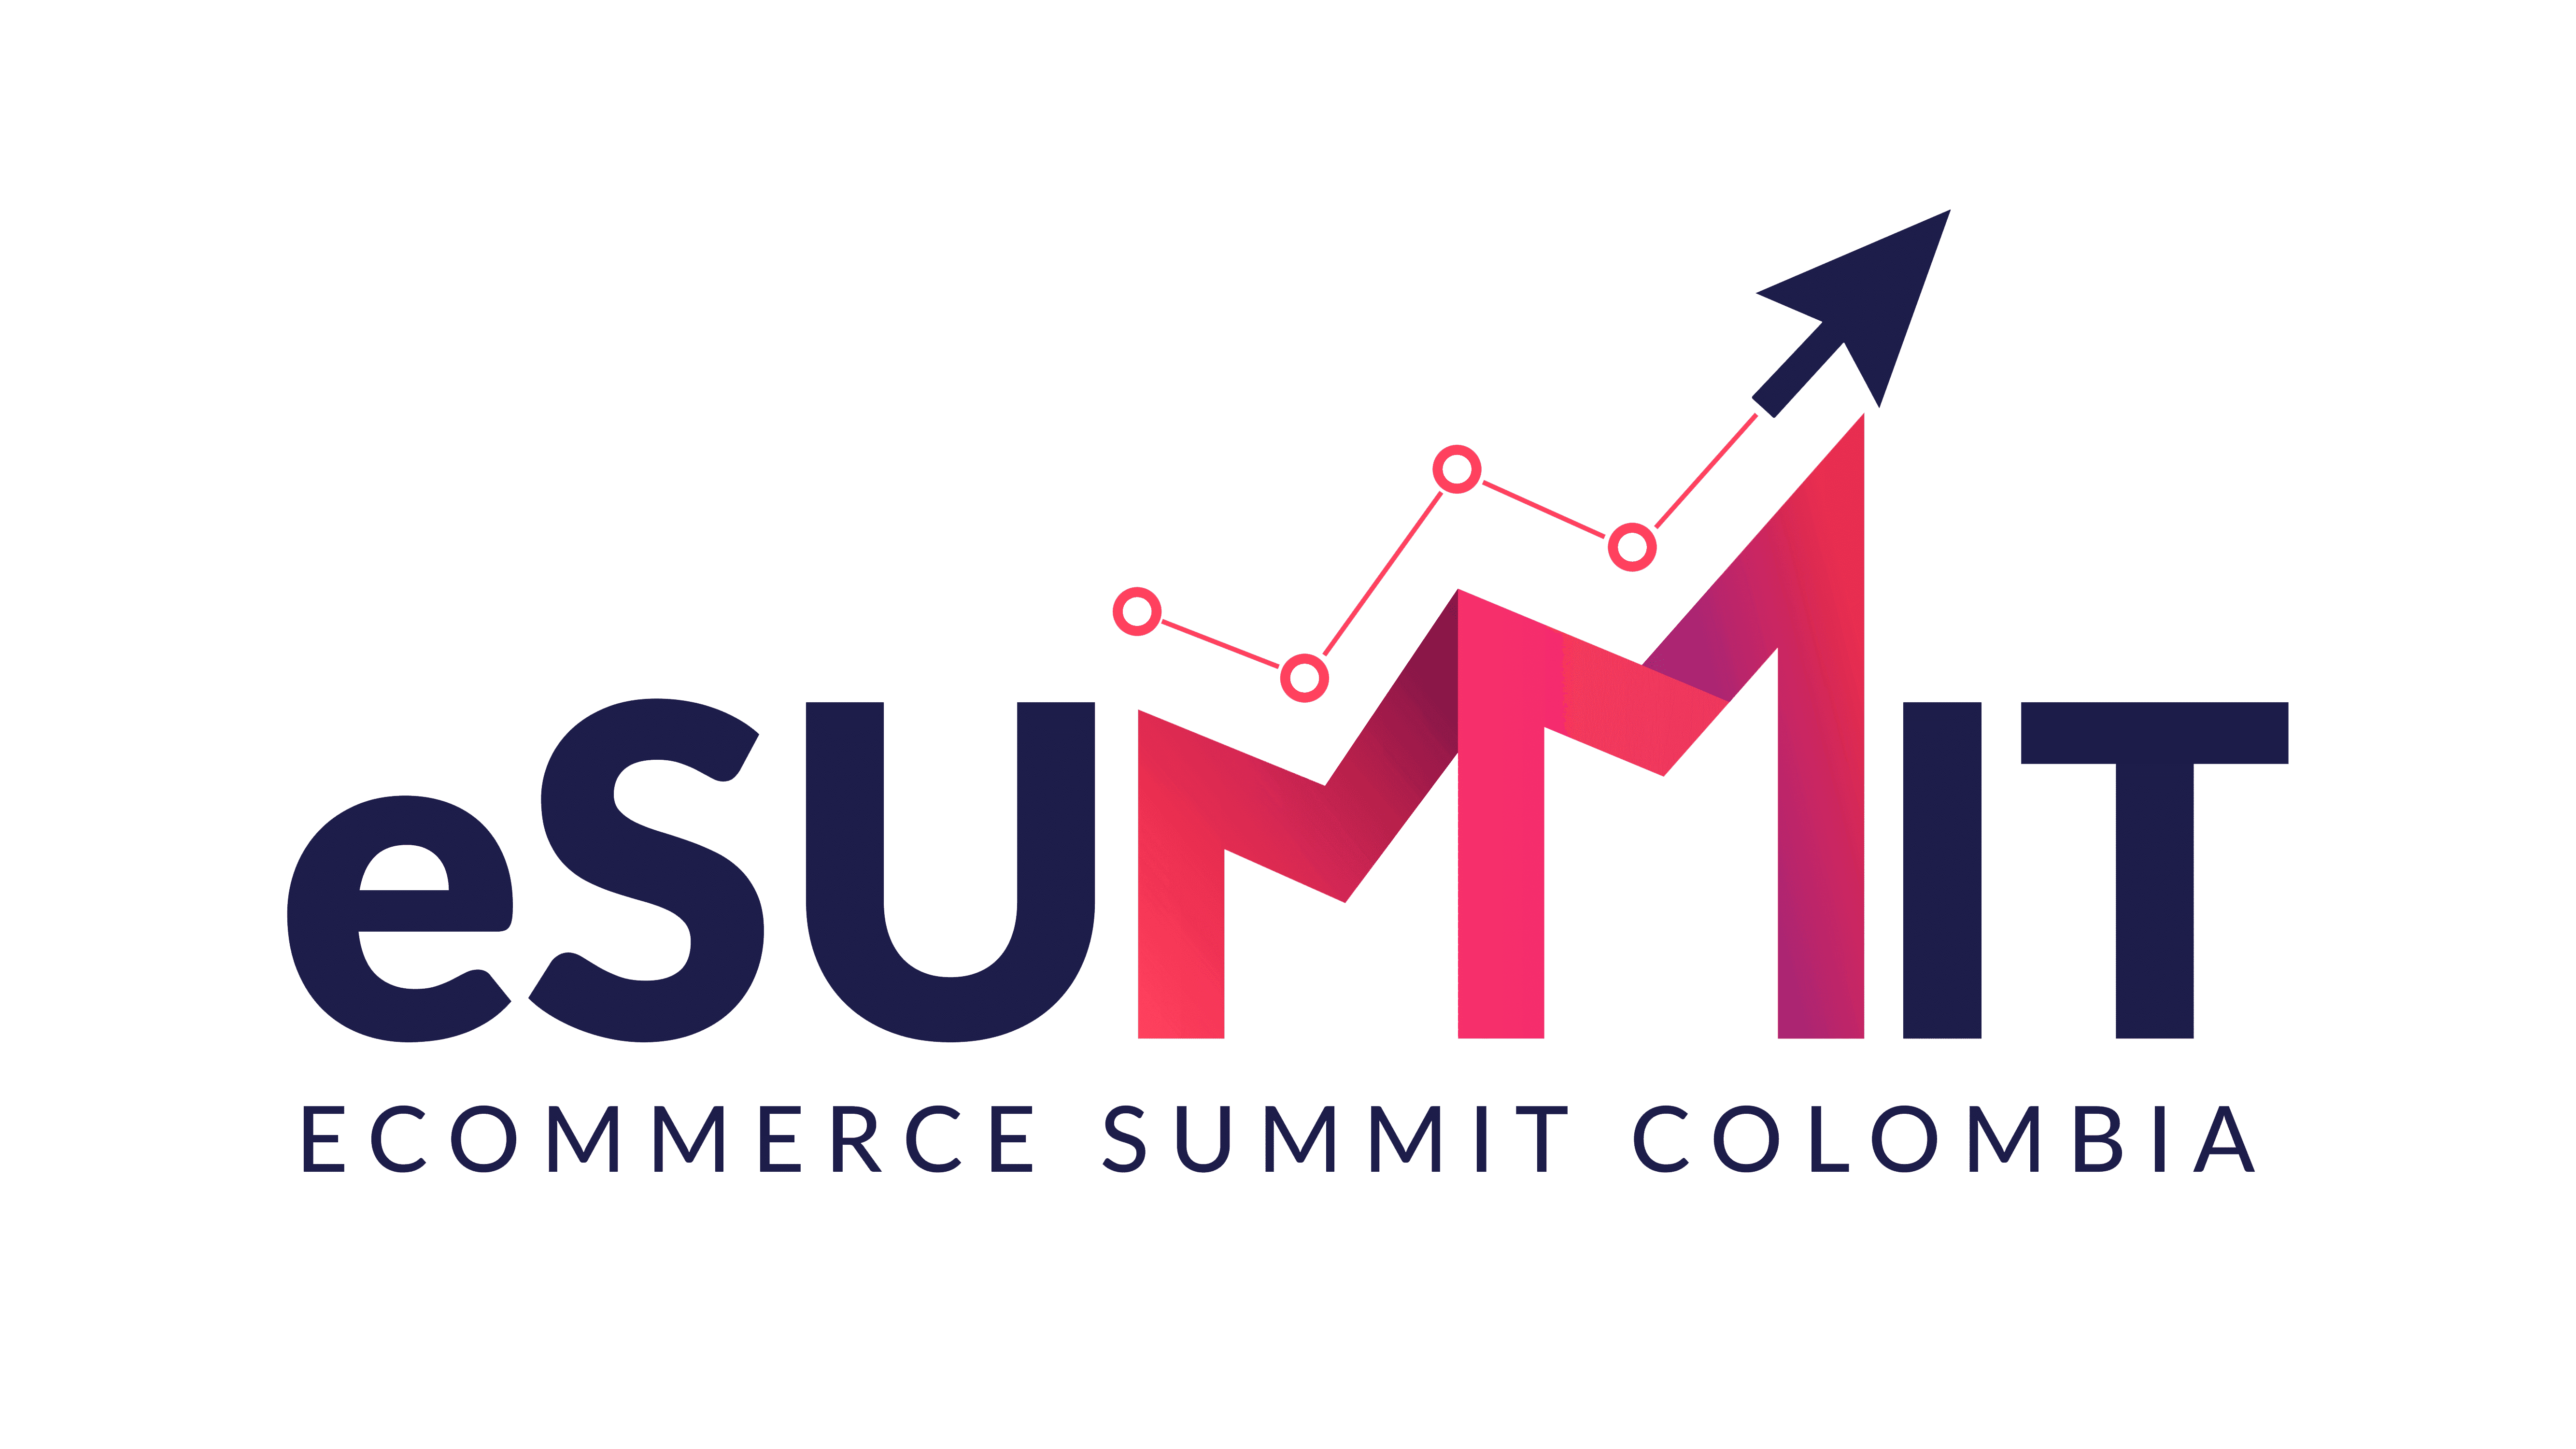 eCommerce Summit Colombia